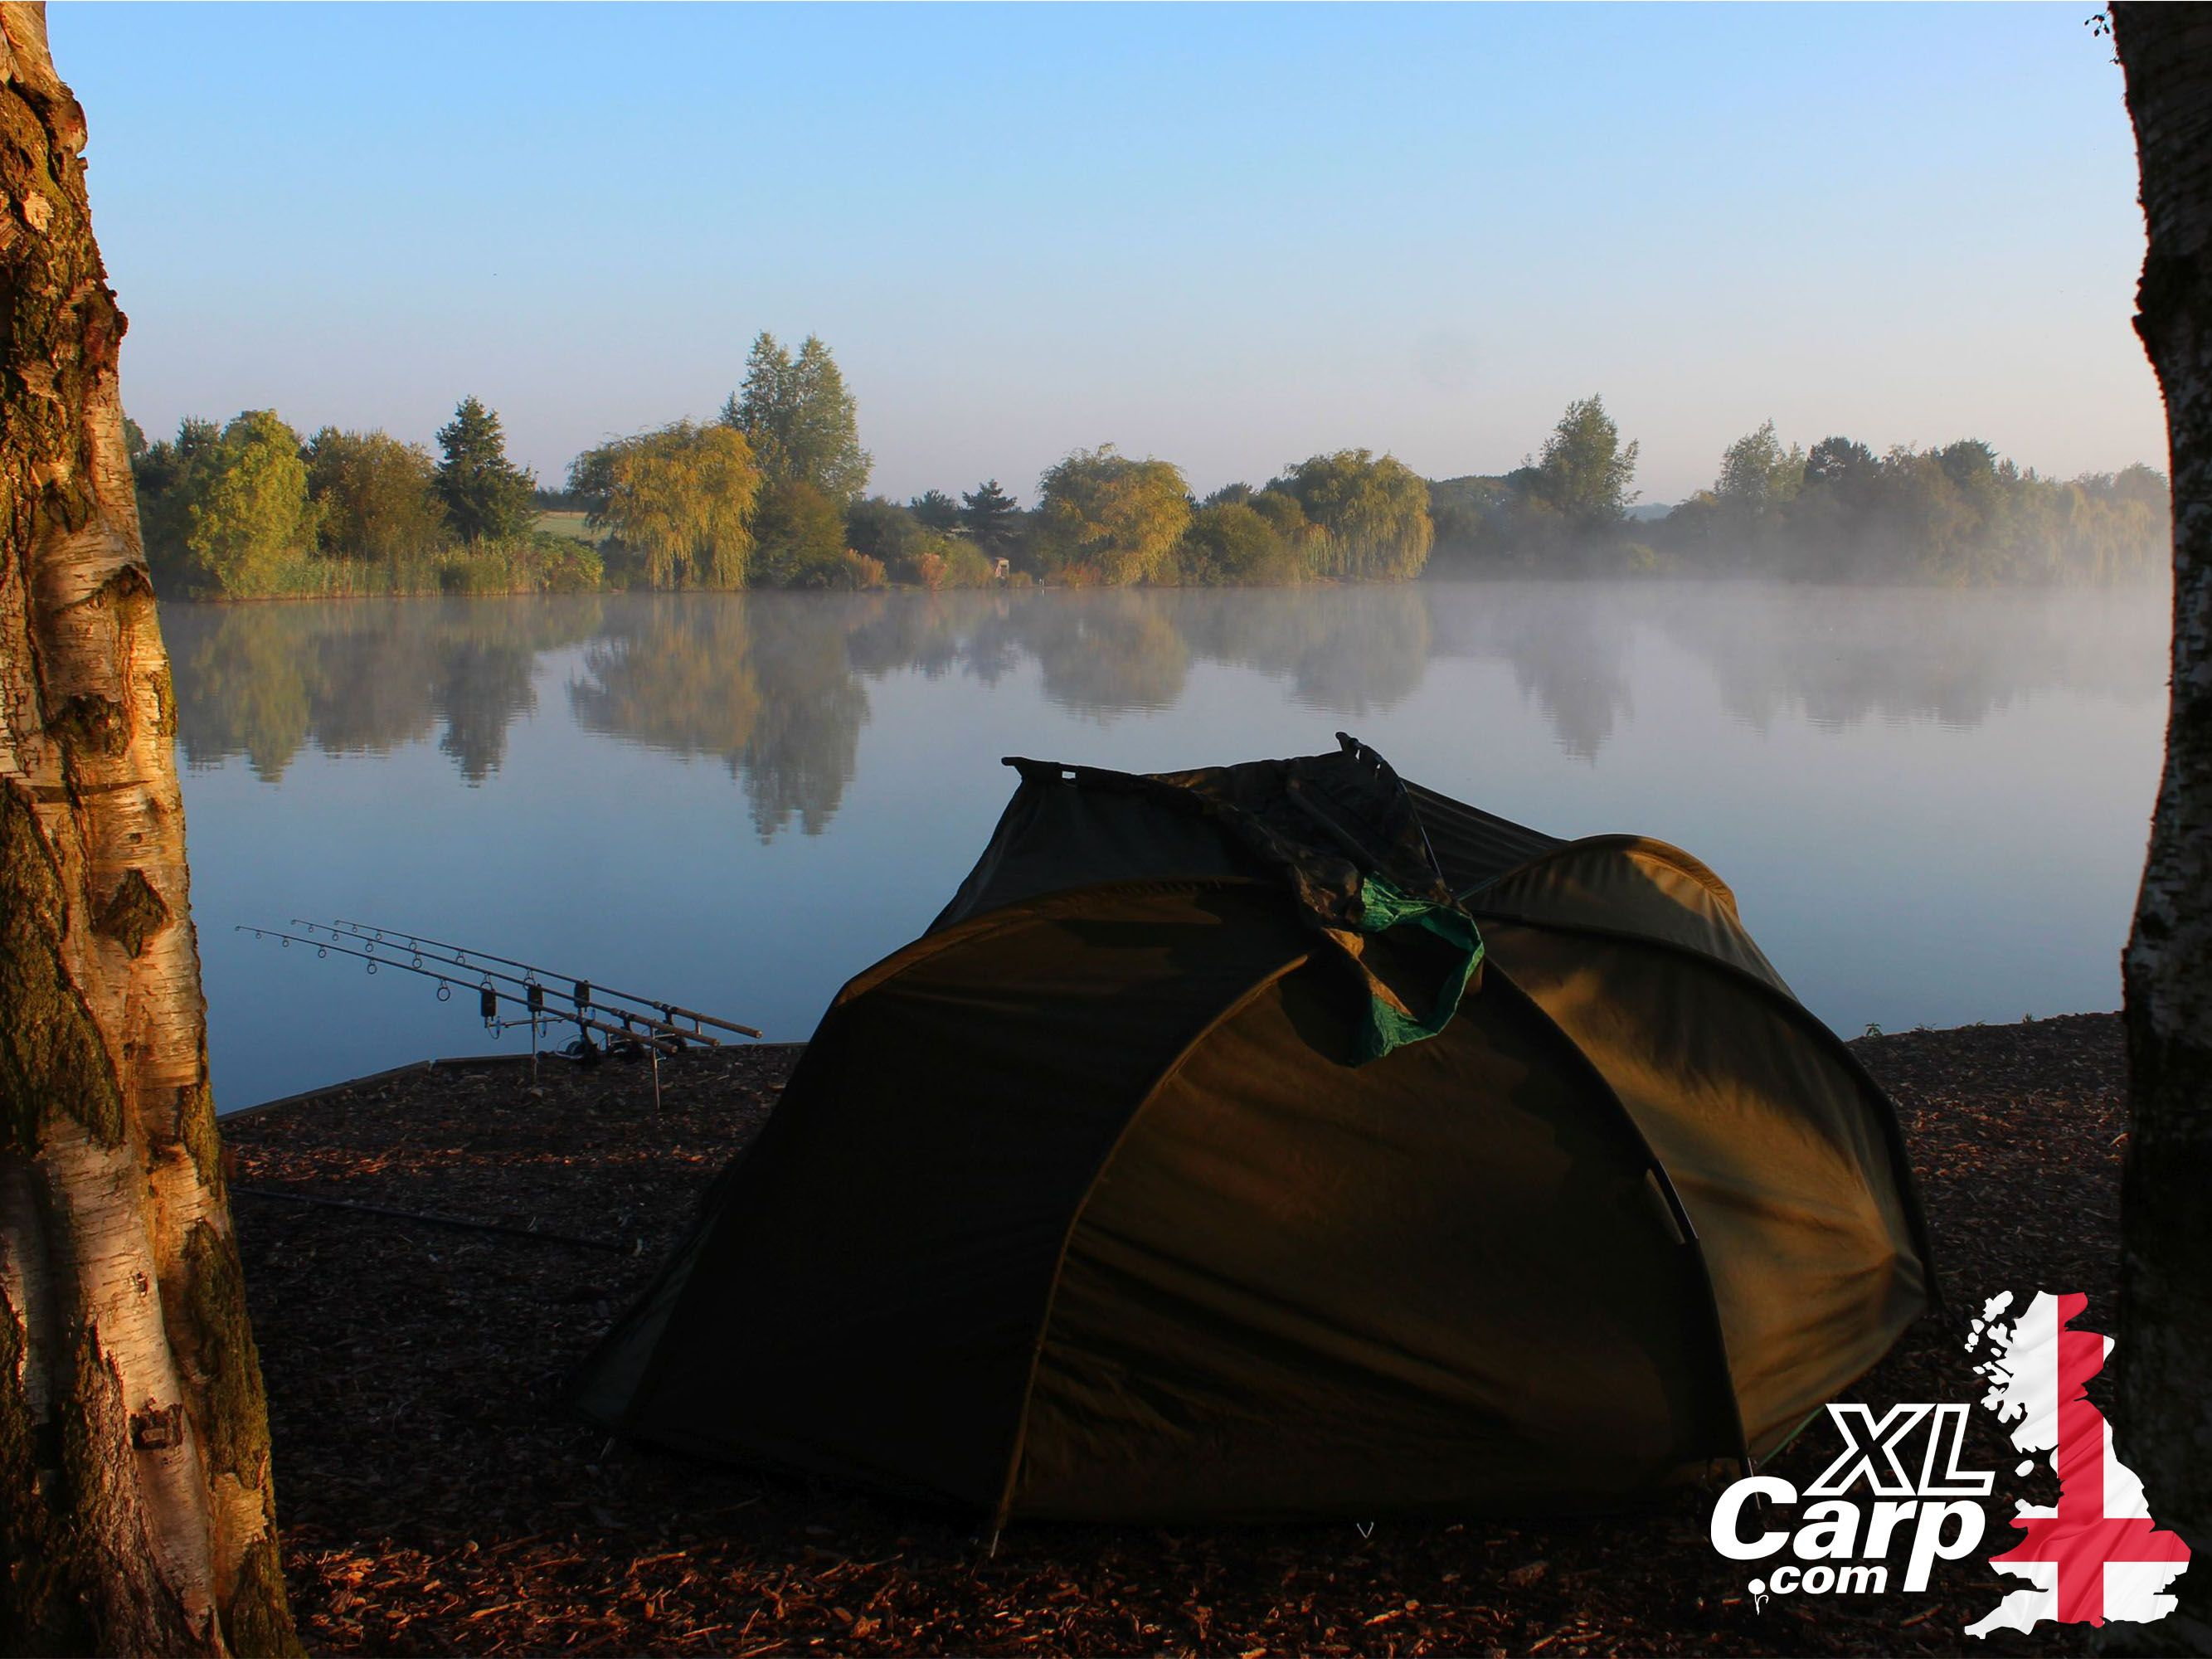 Lodge swim Fryerning Fisheries Brentwood Essex